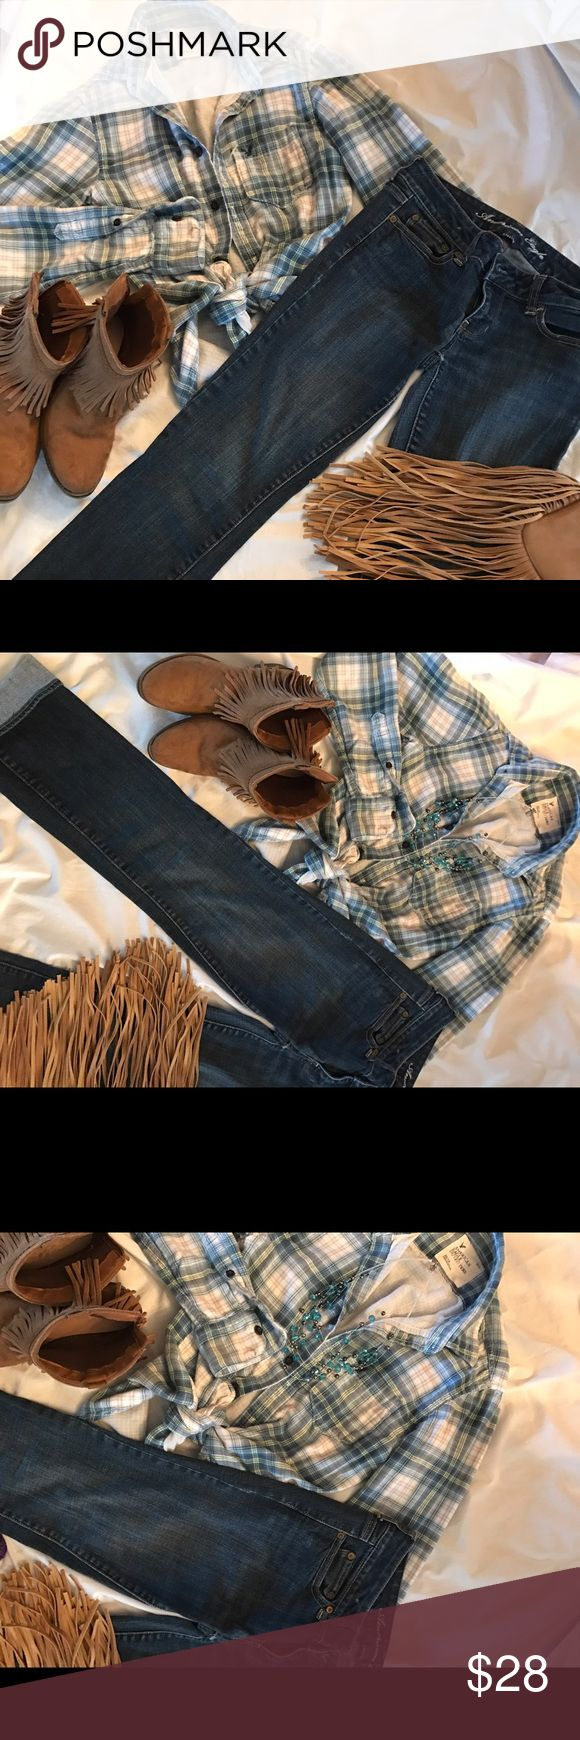 💖💖American Eagle Bundle💖🎉 💥💜American Eagle Jeans and Top💖💖 American Eagle Outfitters Jeans Straight Leg